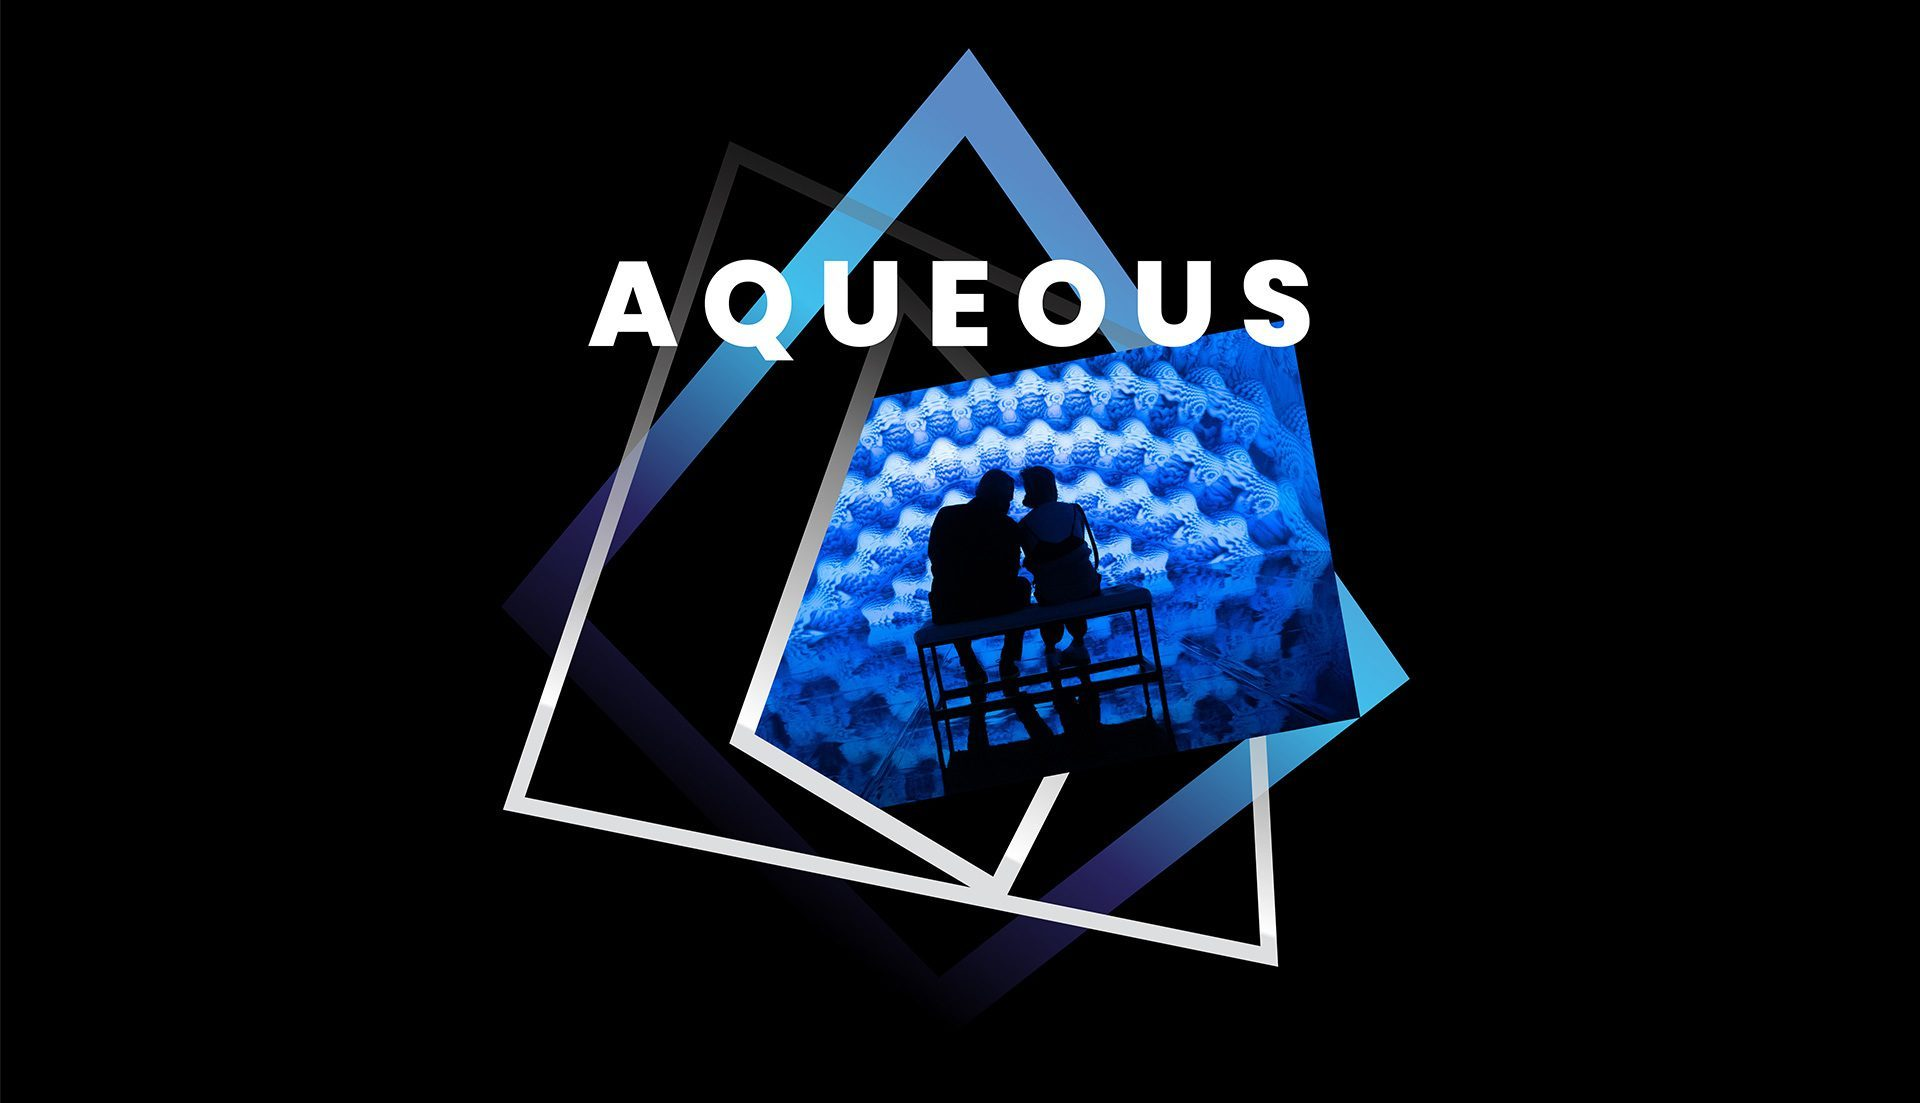 Aqueous ARTECHOUSE Miami